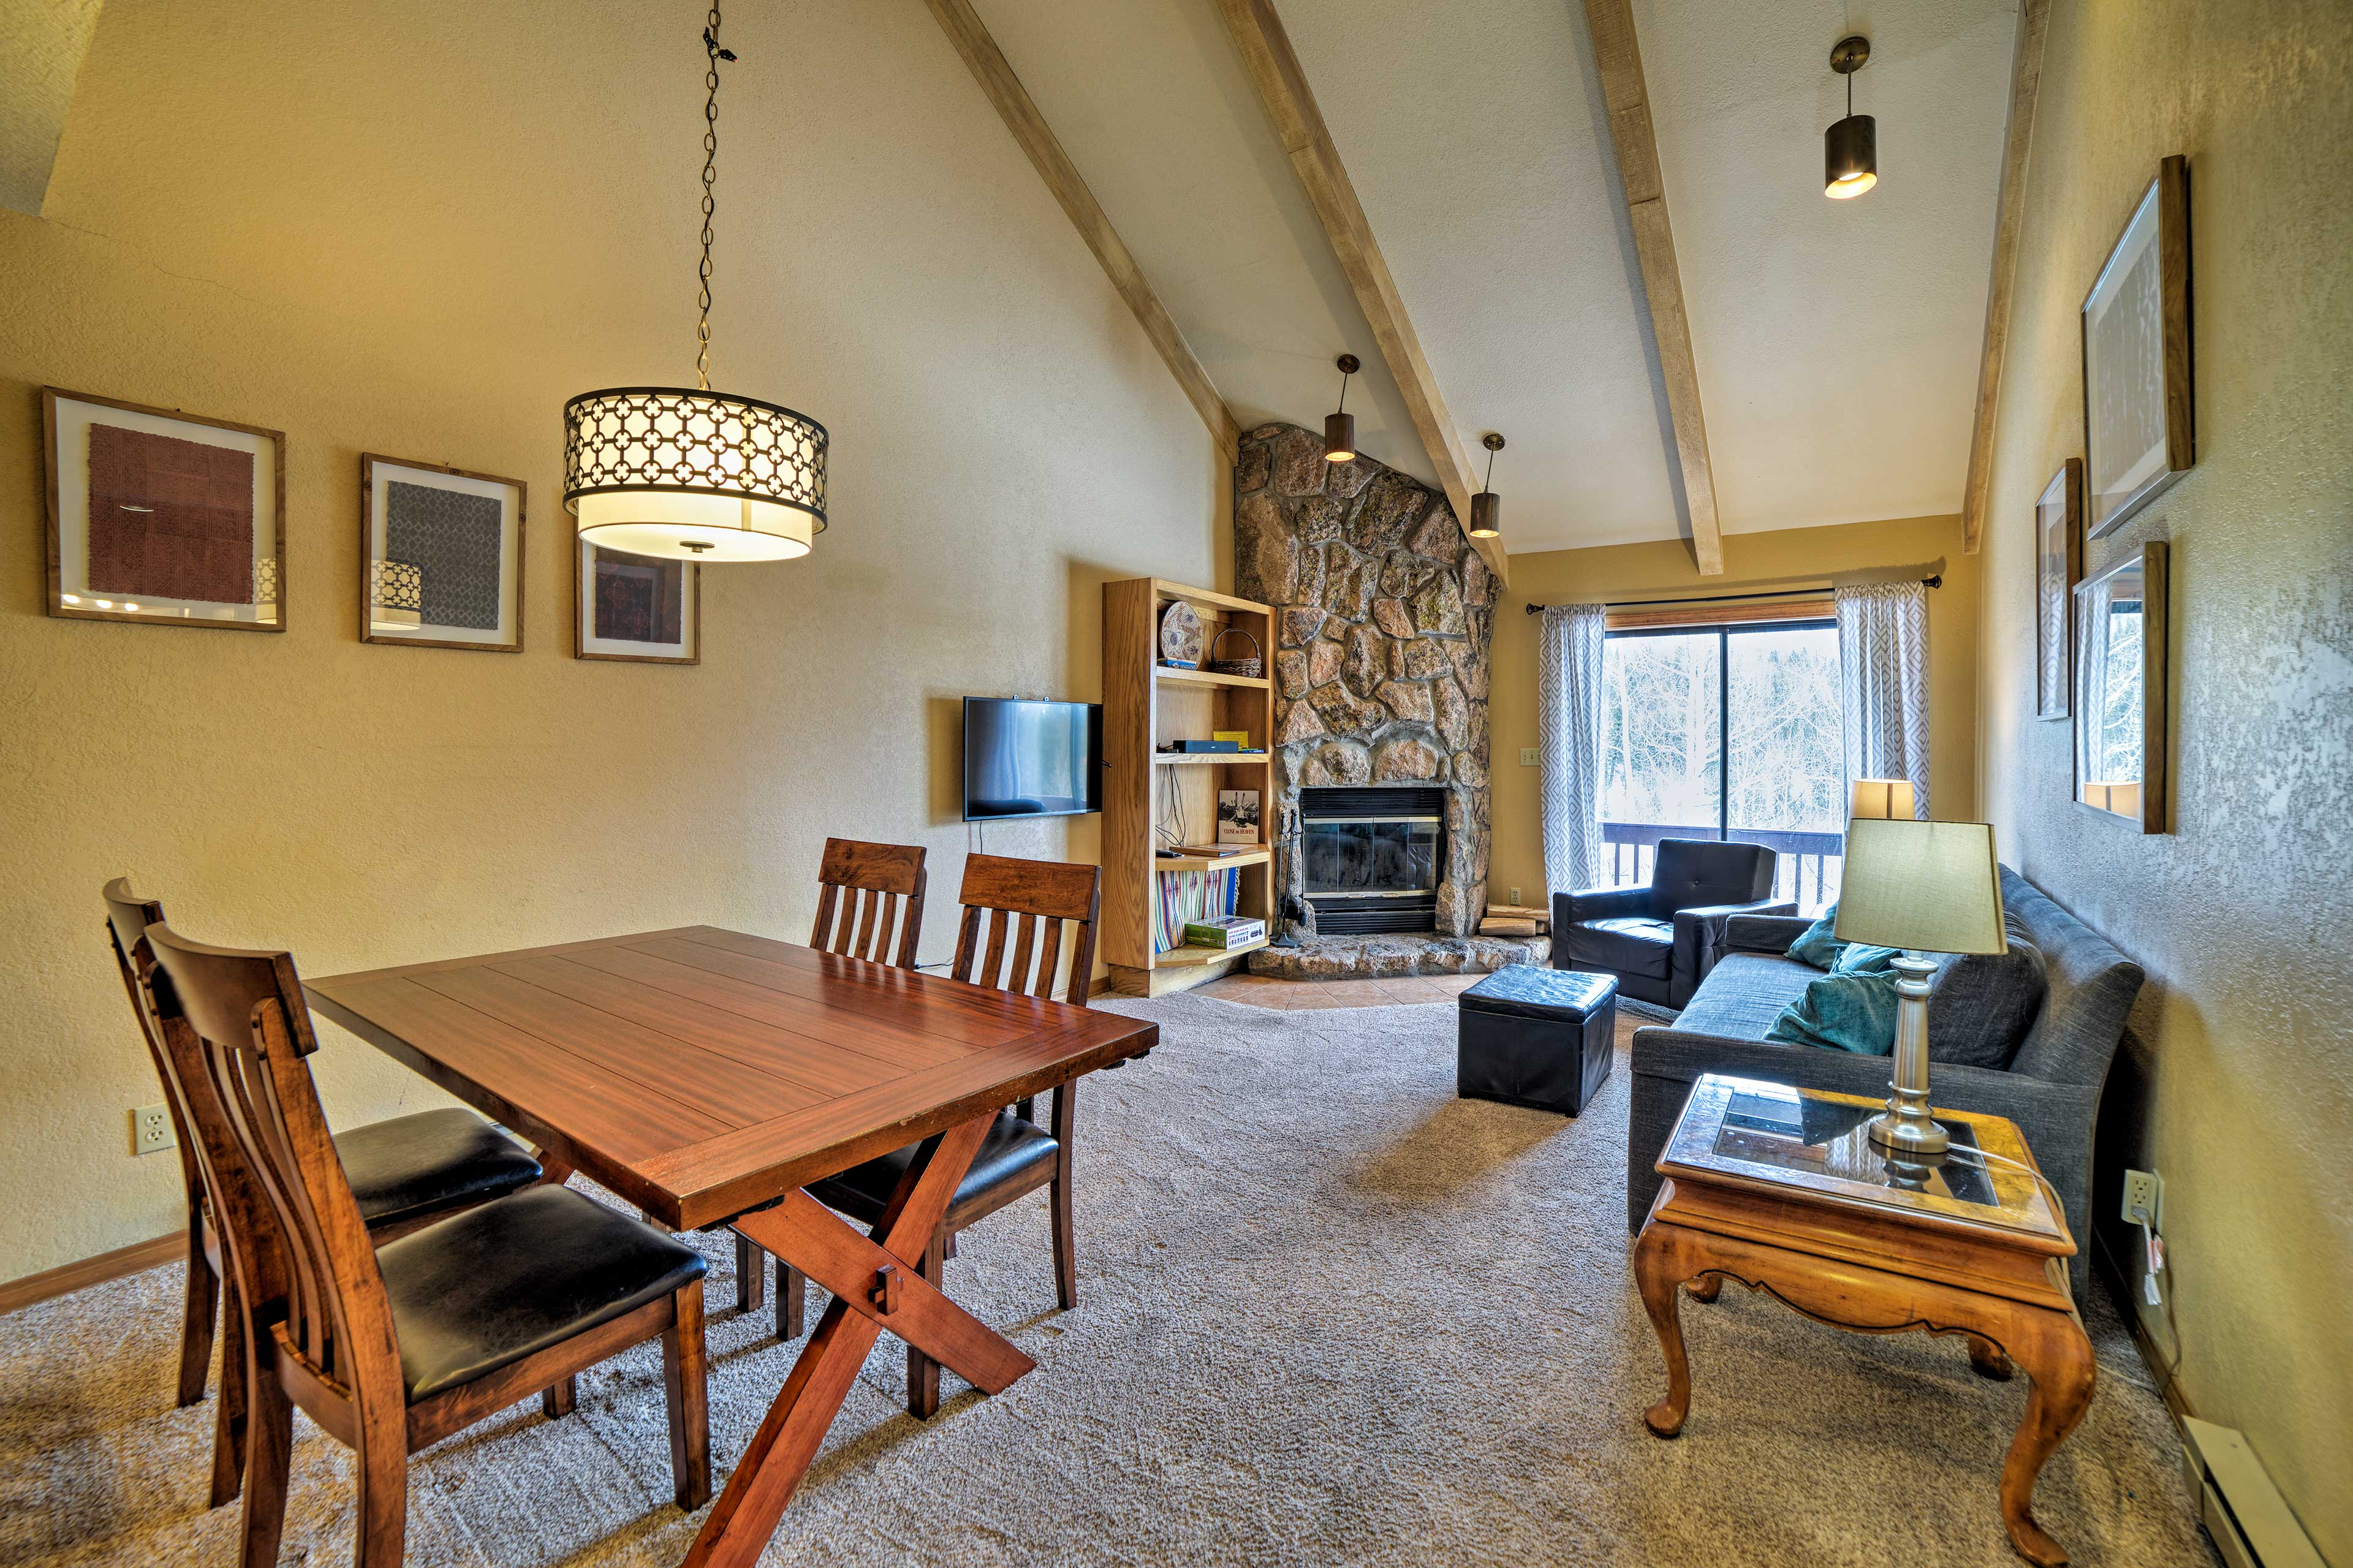 Living Room | Dining Table | Wood-Burning Fireplace